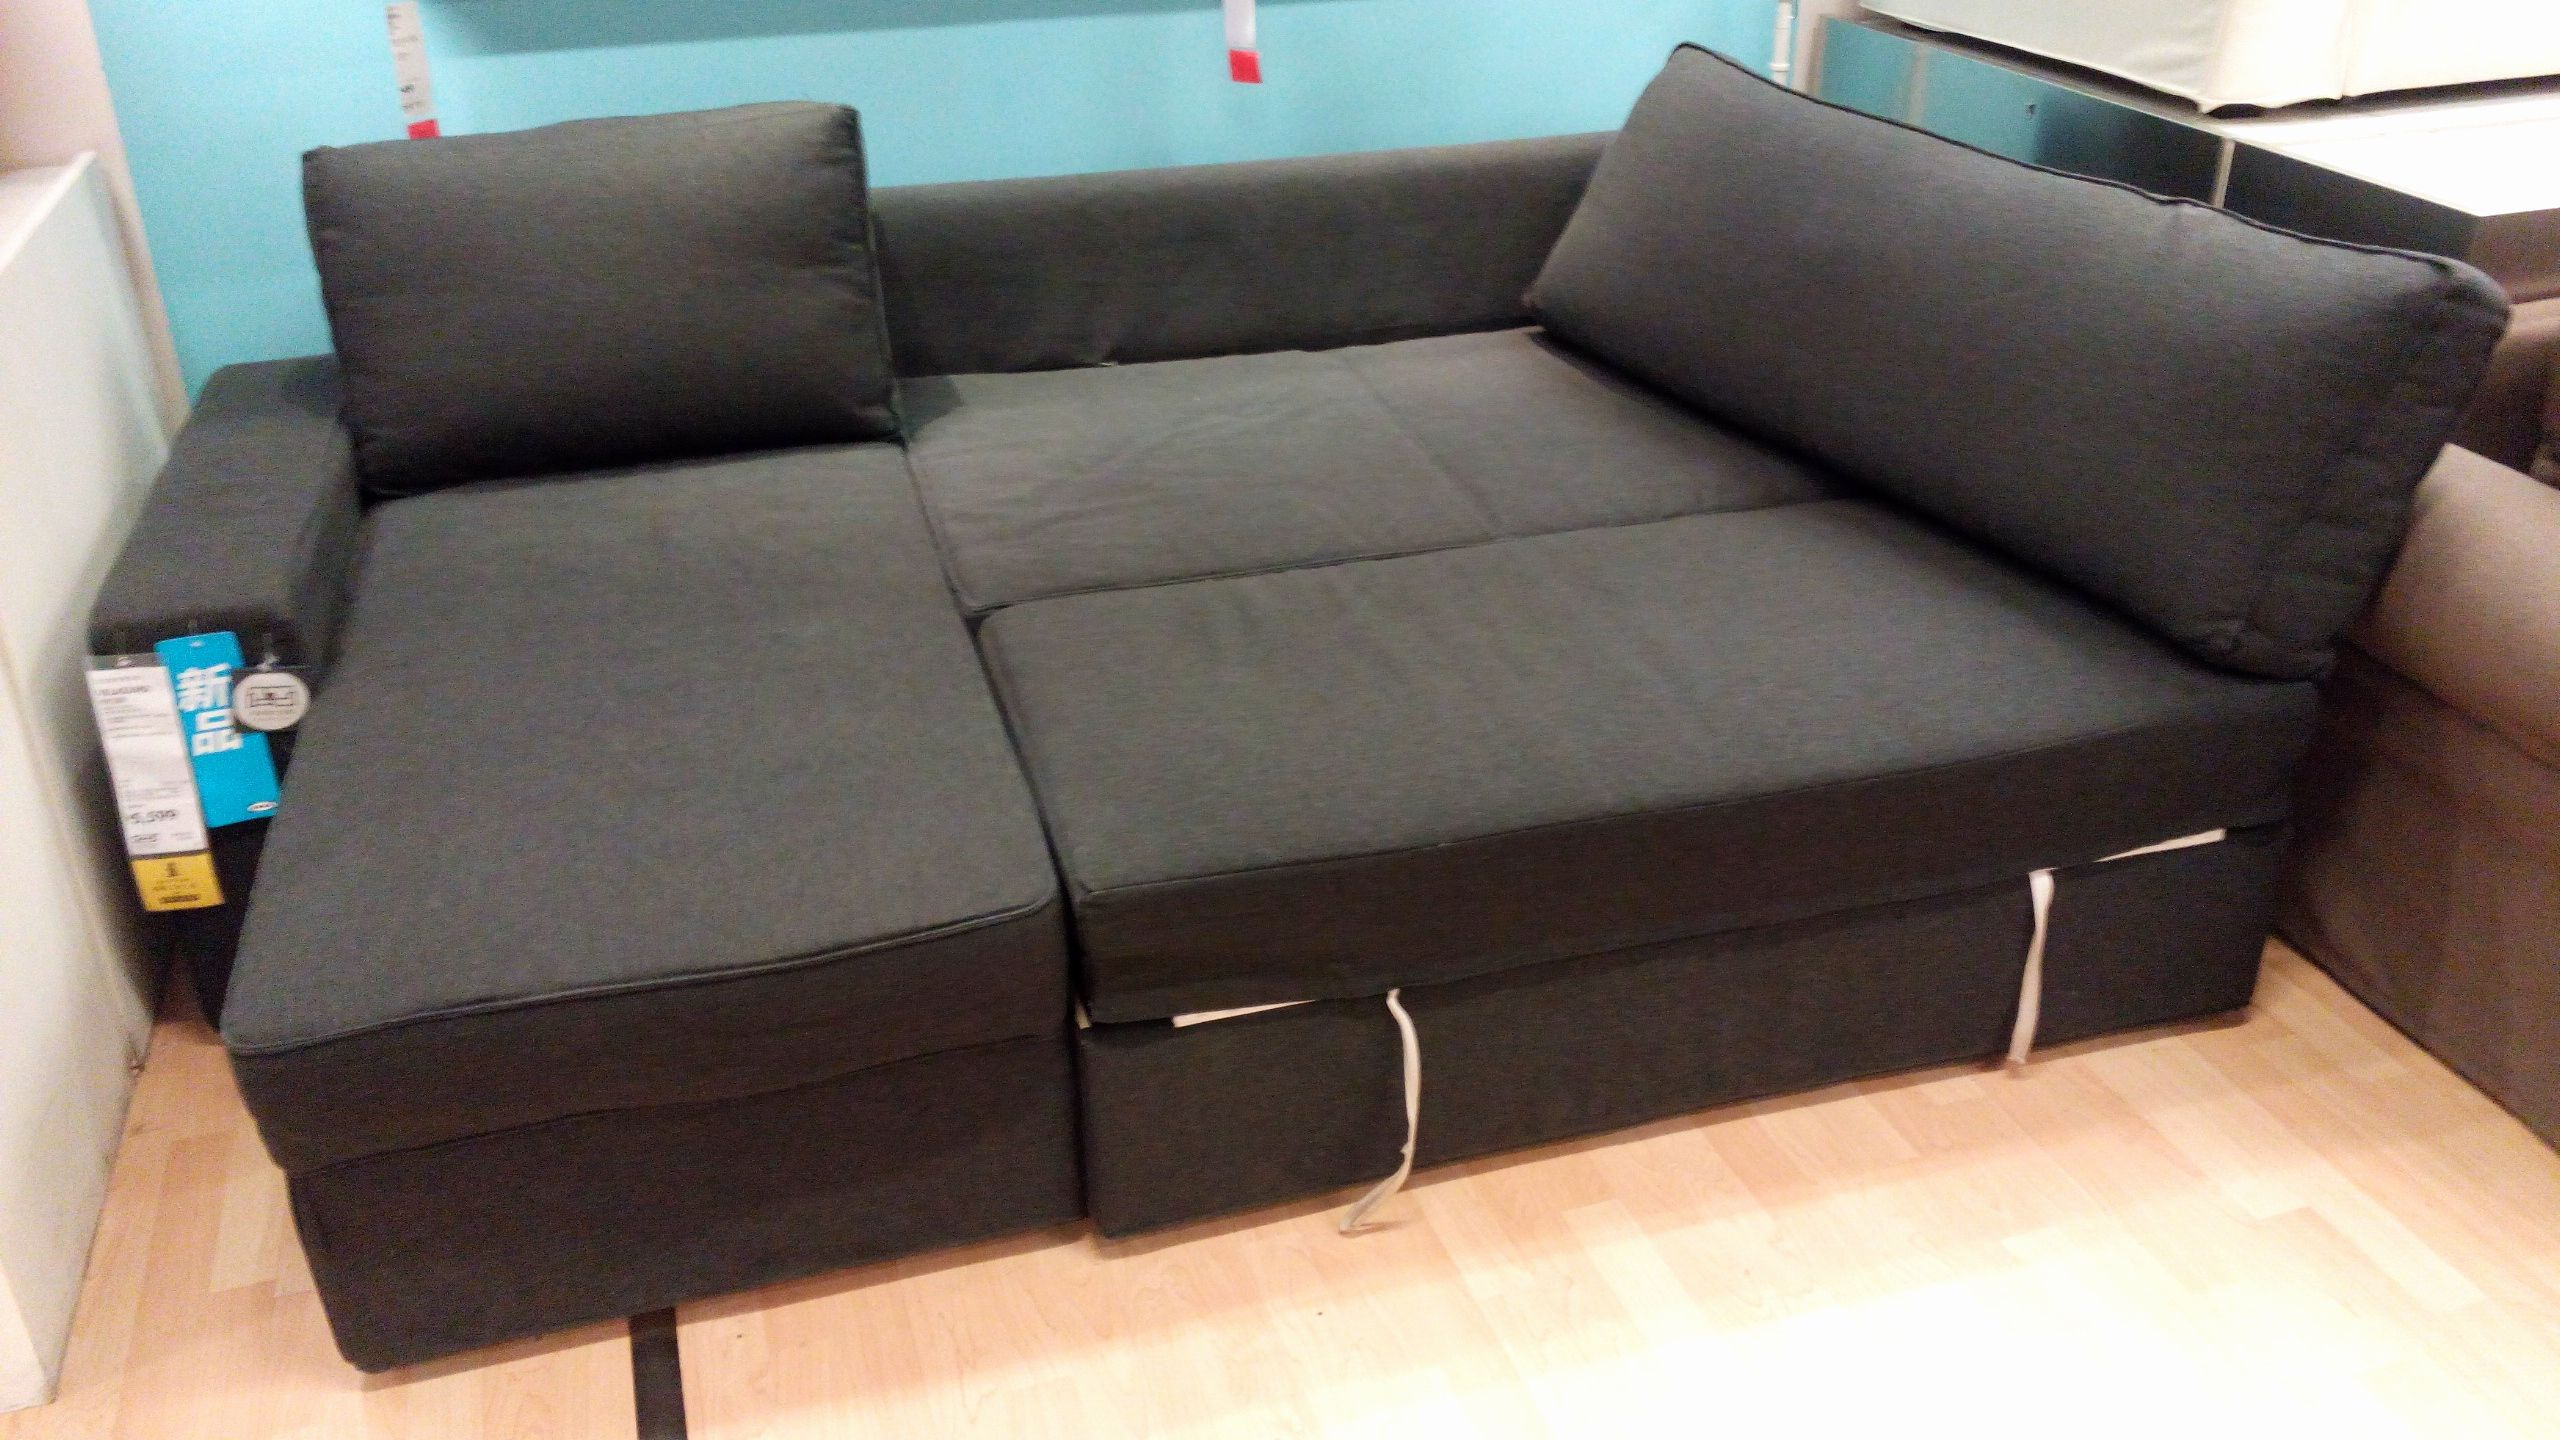 Ikea Couch Bett Trend Best Of Ikea Sofa Sleeper Pics Ikea Sofa Sleeper New Ikea Vilasund